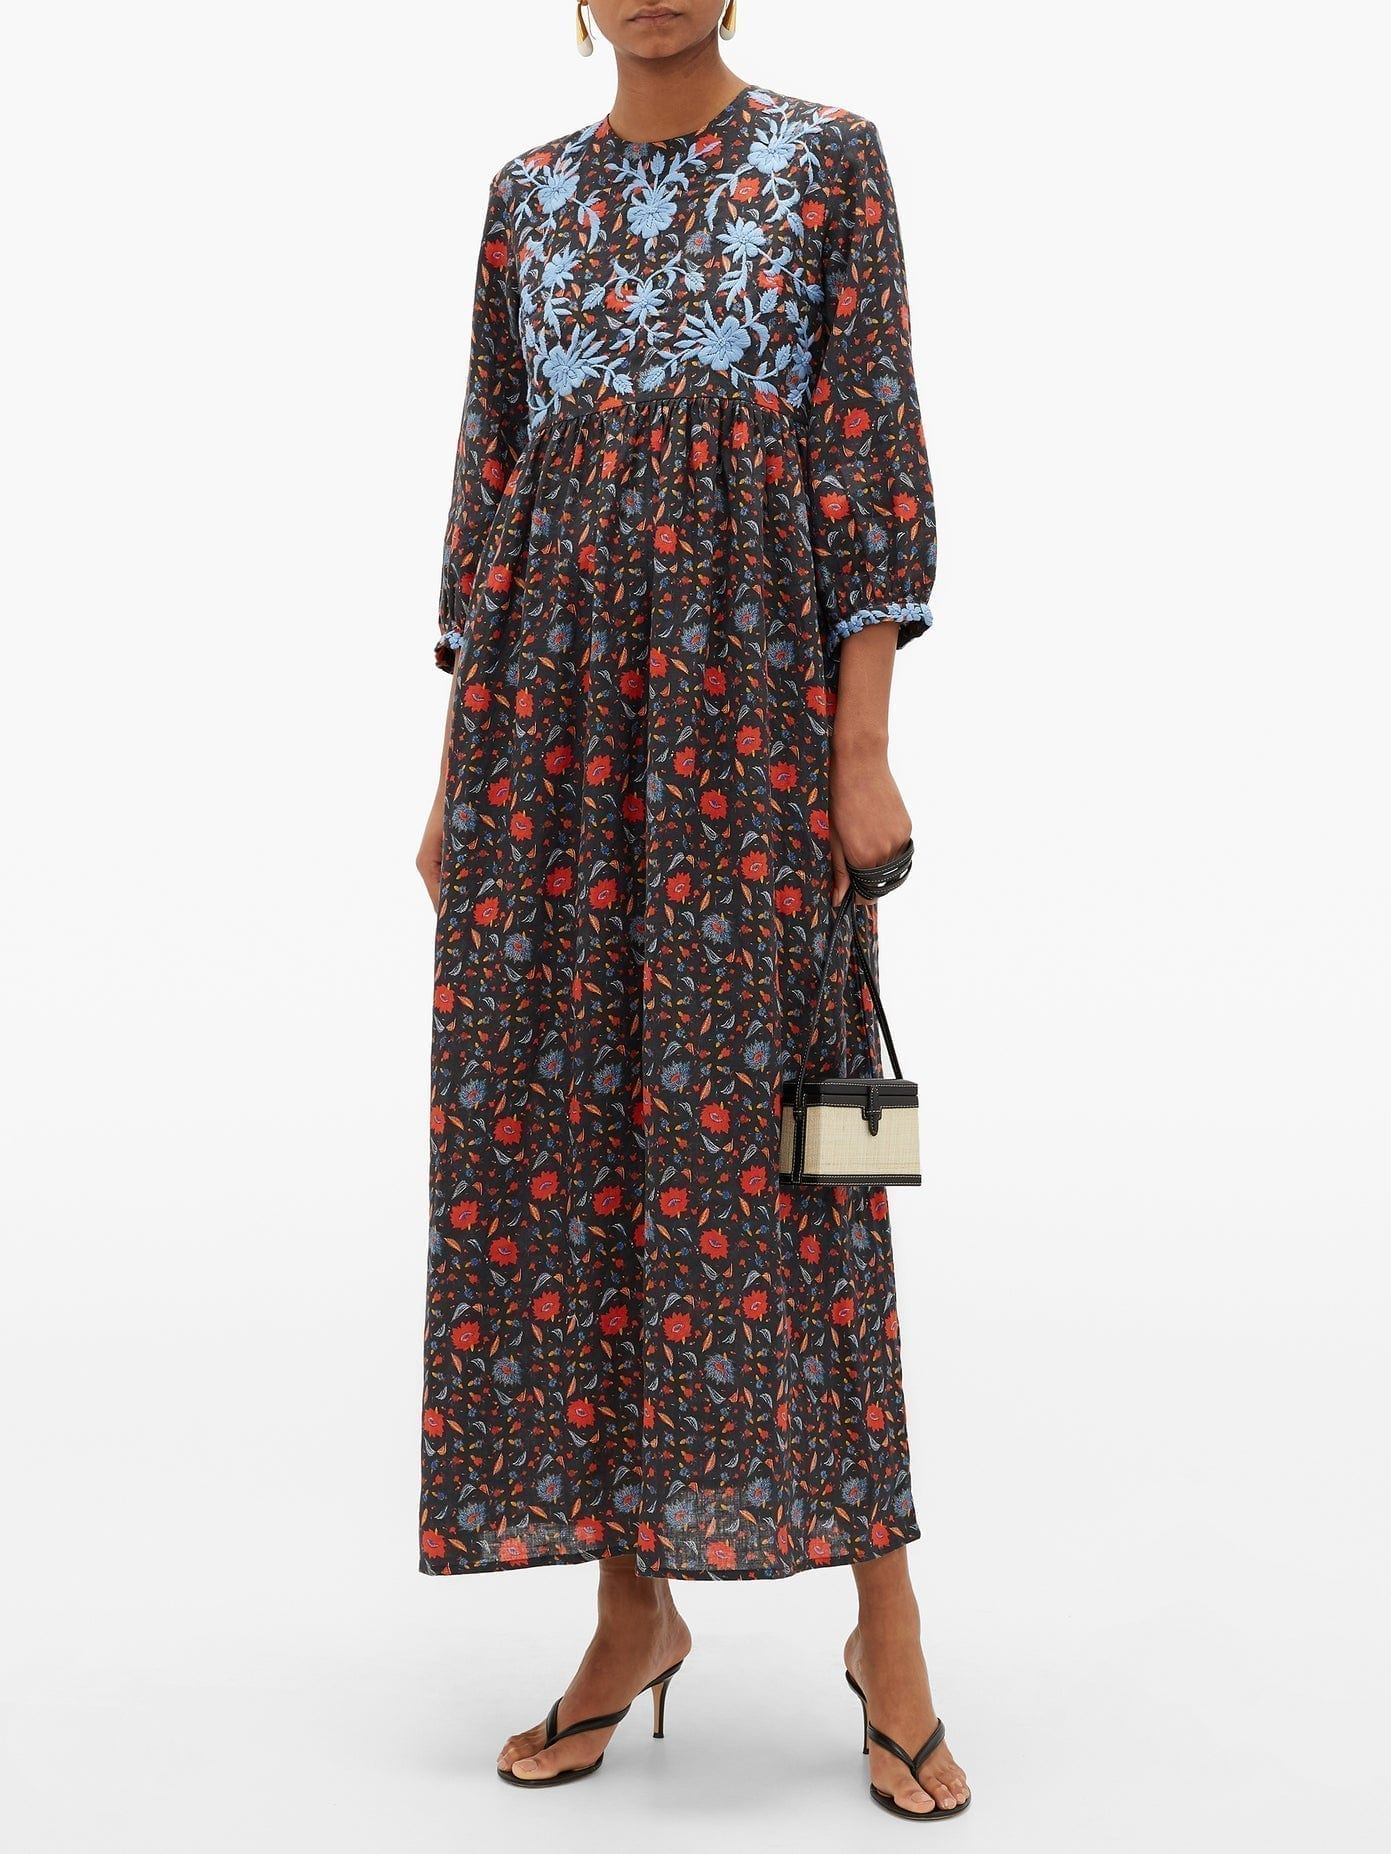 MUZUNGU SISTERS Floral-Embroidered Linen Dress